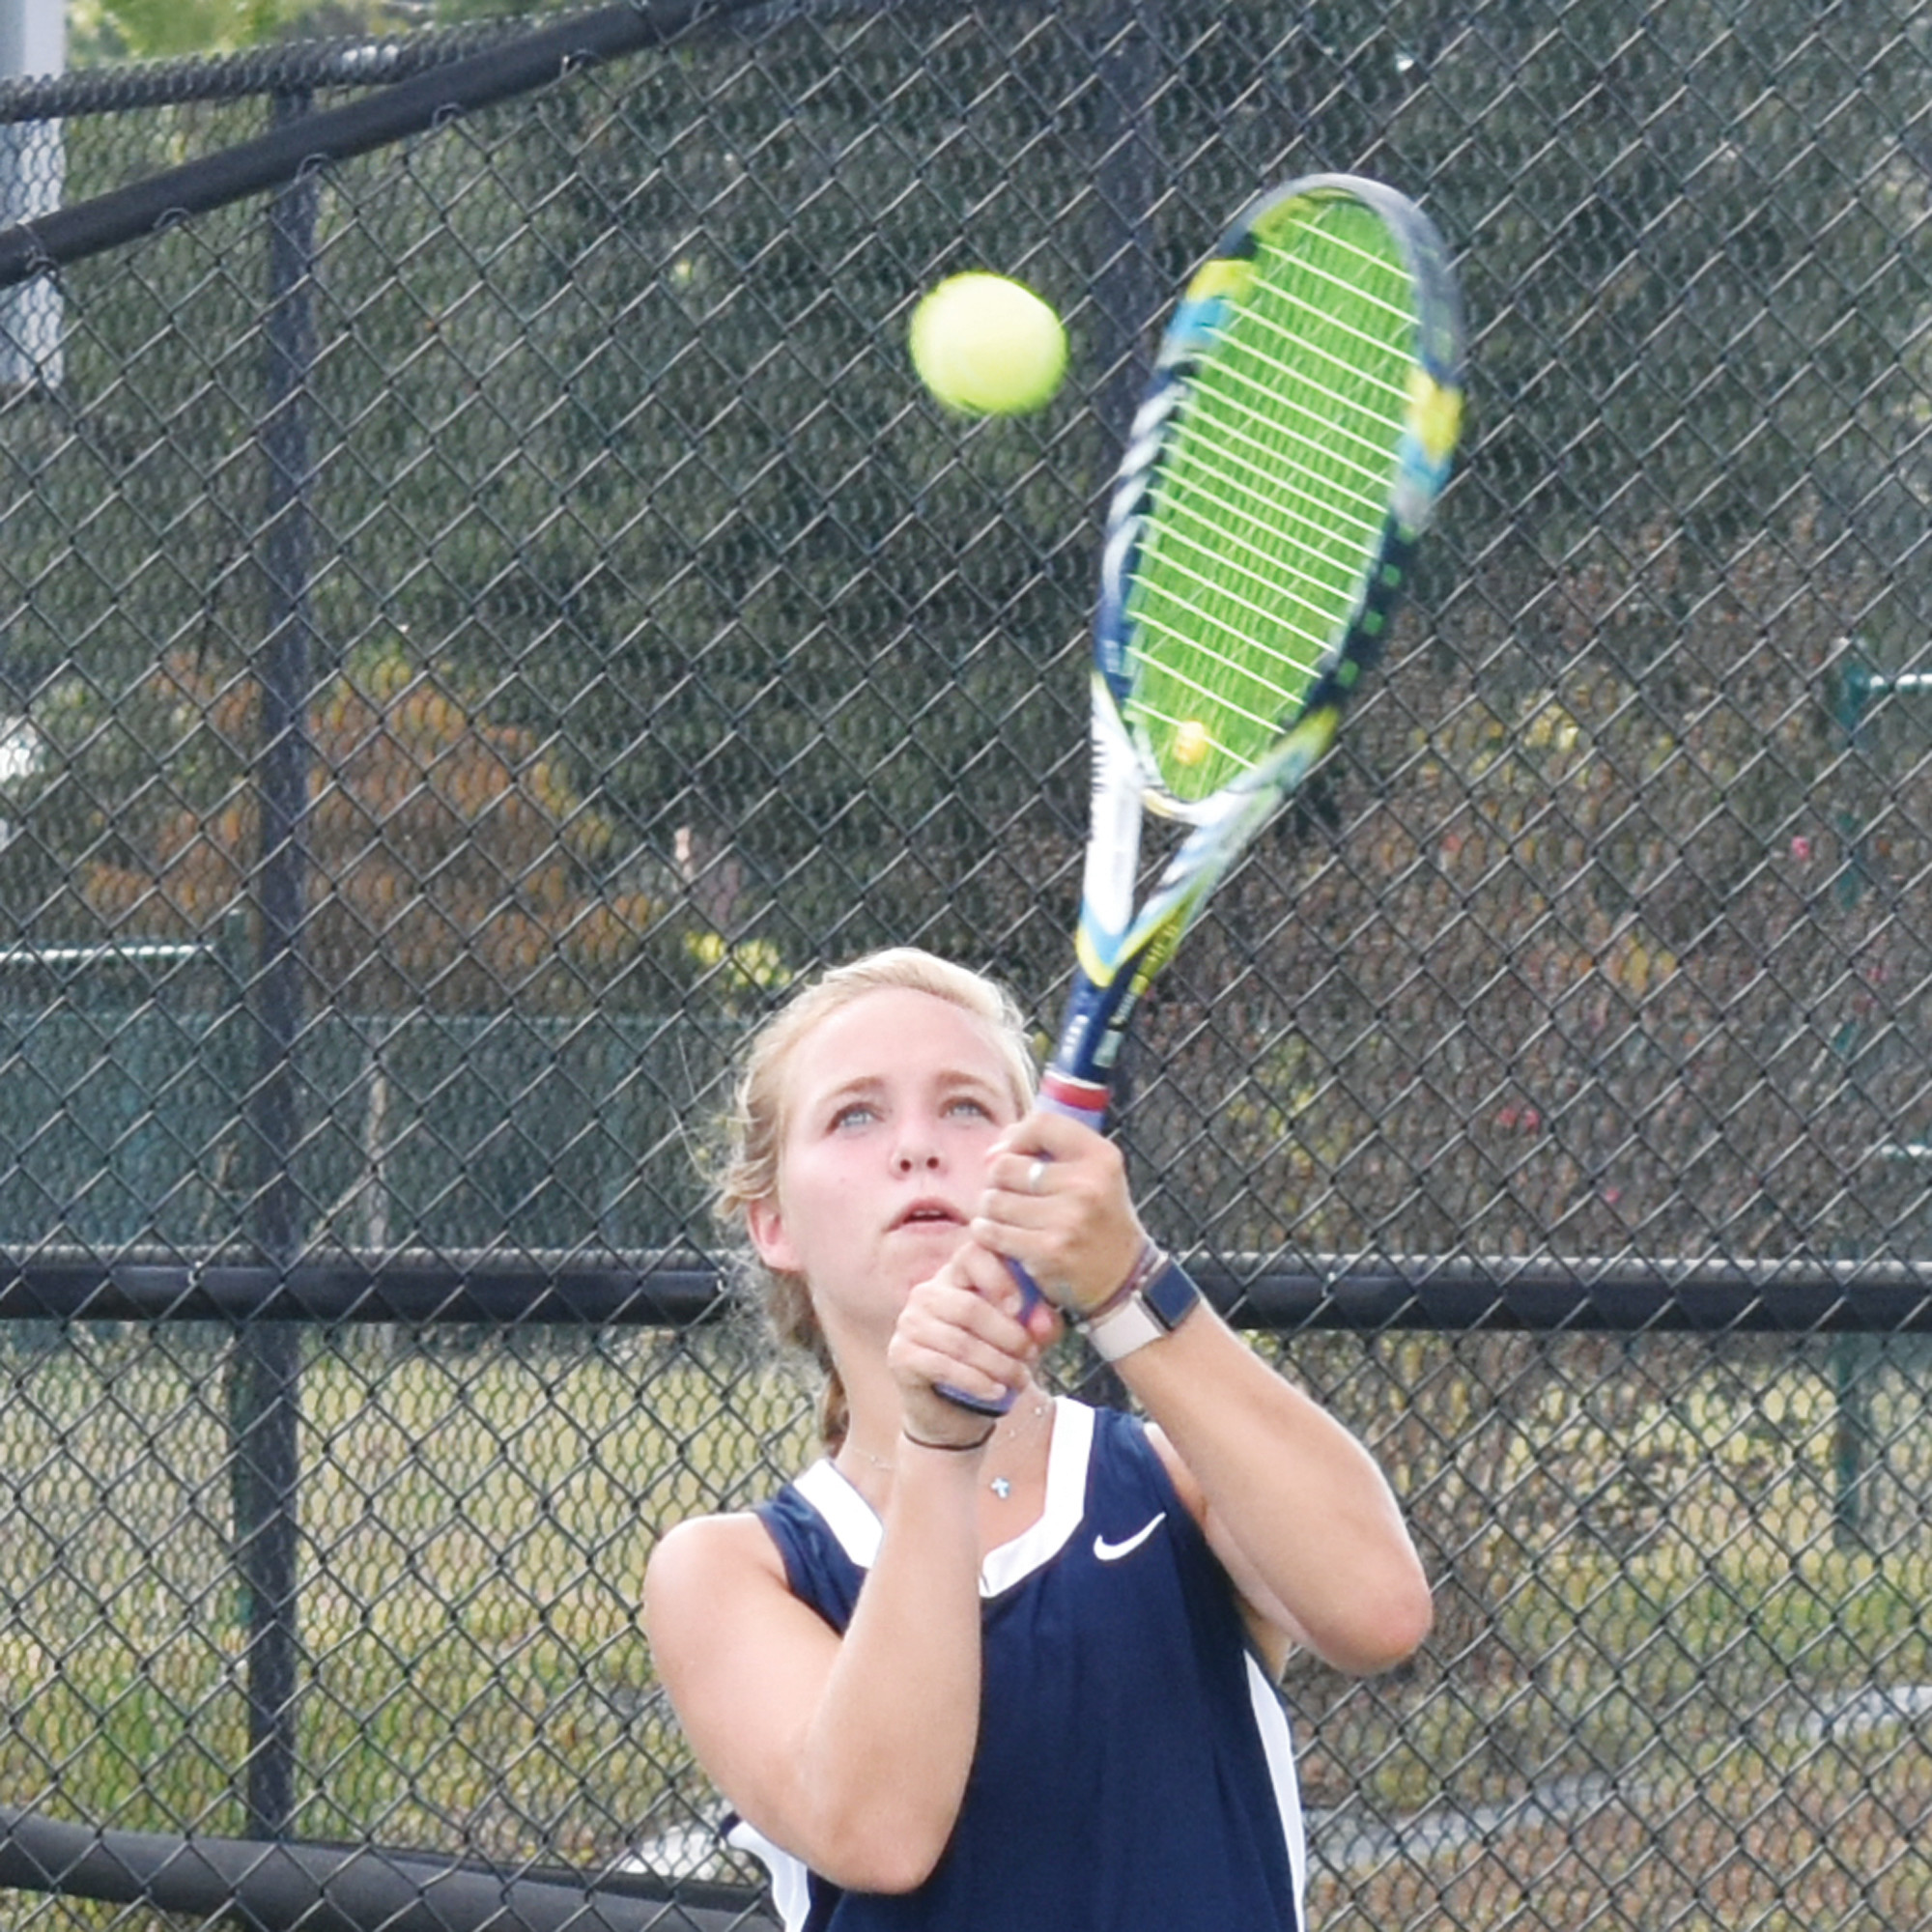 Wilson Hall's Lizzy Davis hits a backhand return during Tuesday's match against Florence Christian.